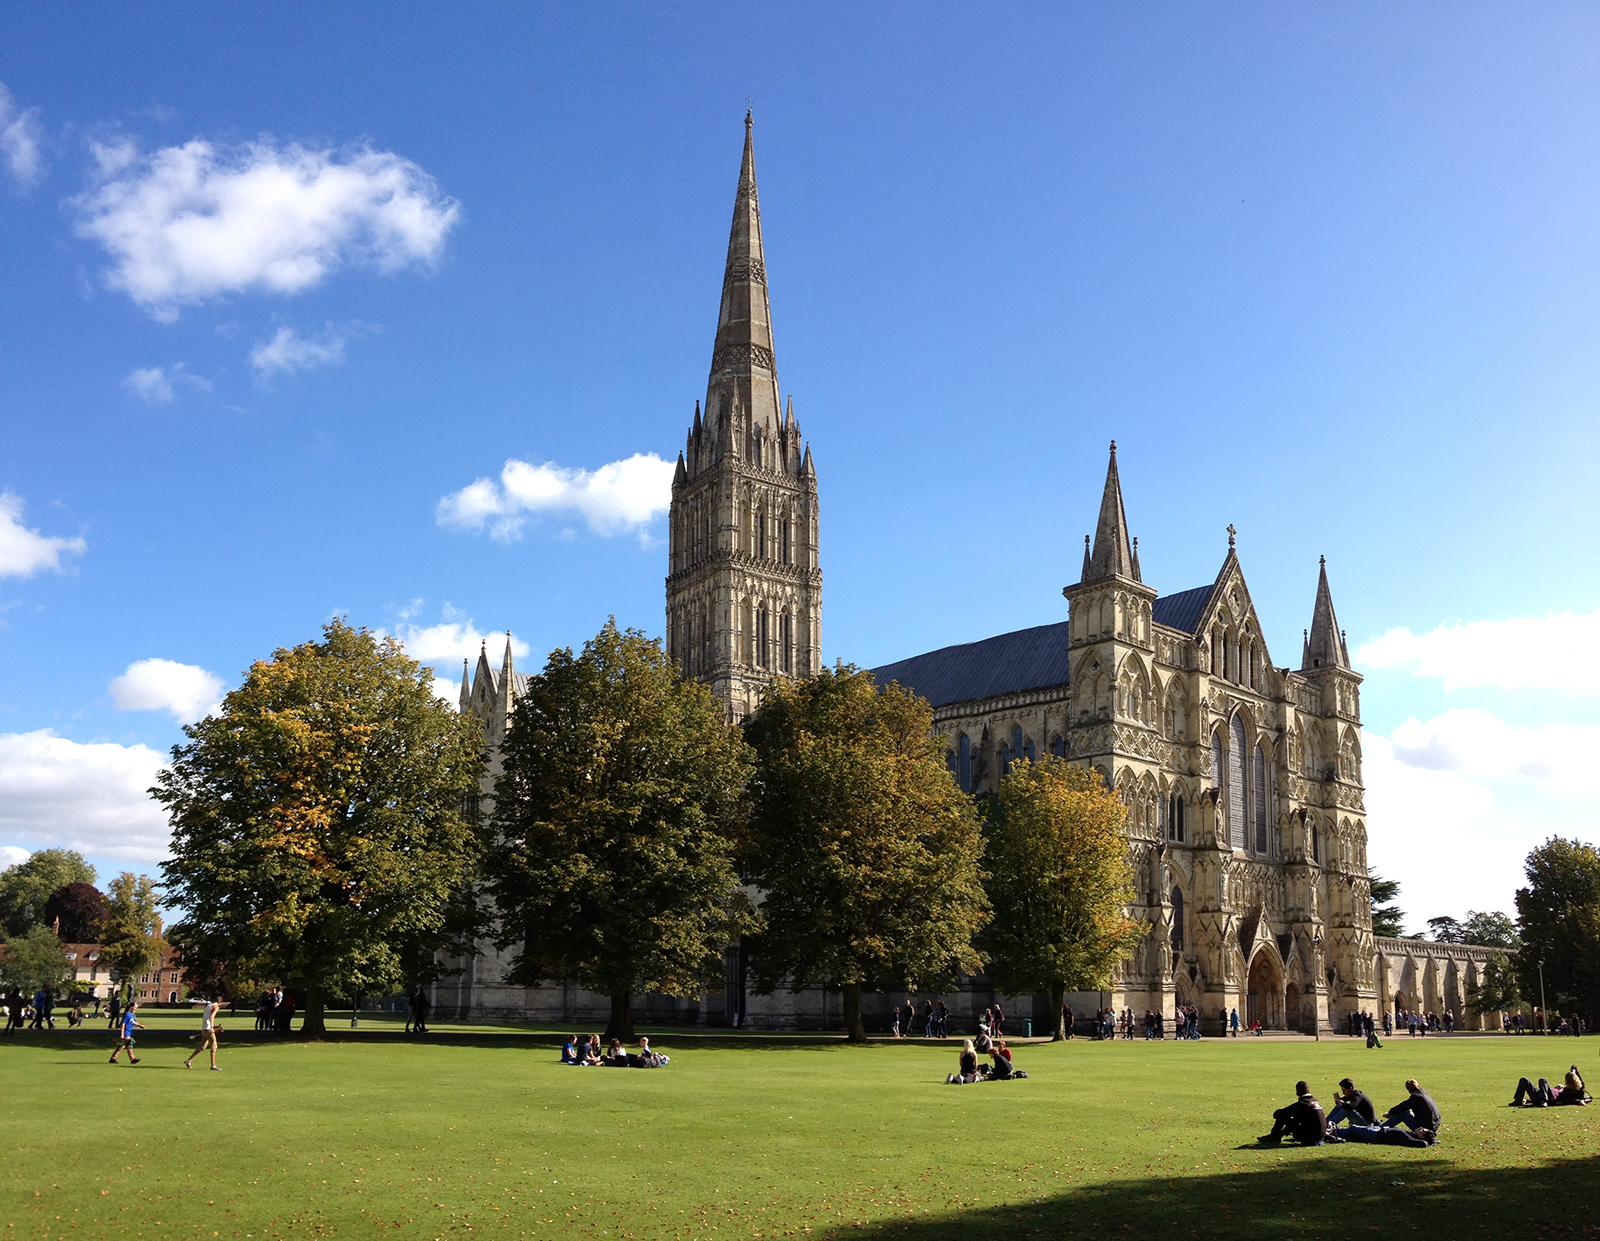 Salisbury Cathedral is the sixth main character in Five Rivers Met on a Wooded Plain